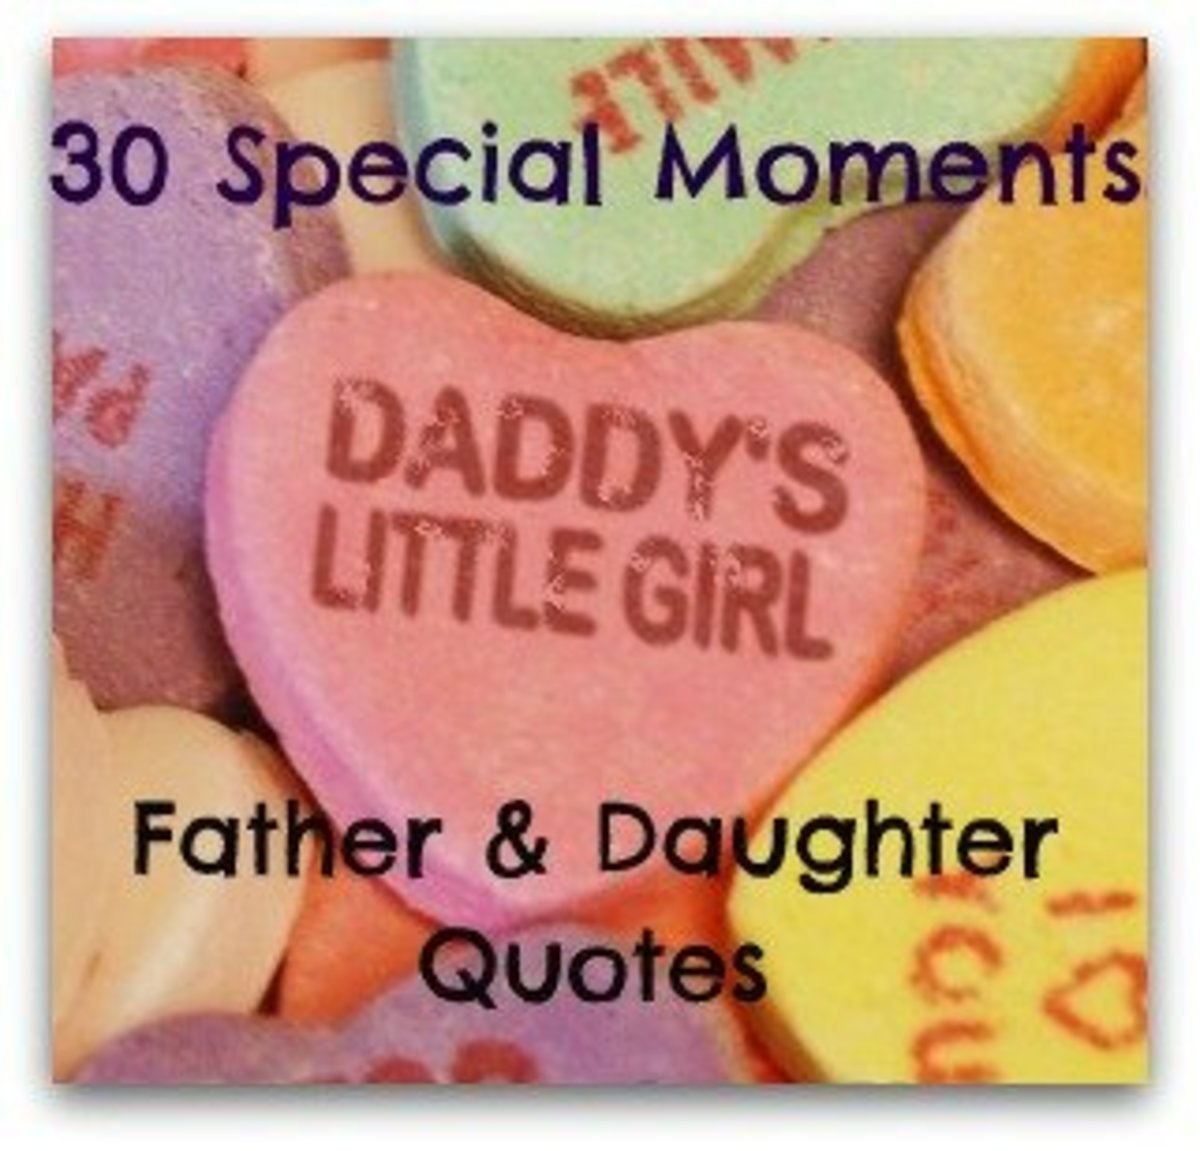 Father Daughter Quotes: Daddy's Little Girl Bonding Moments